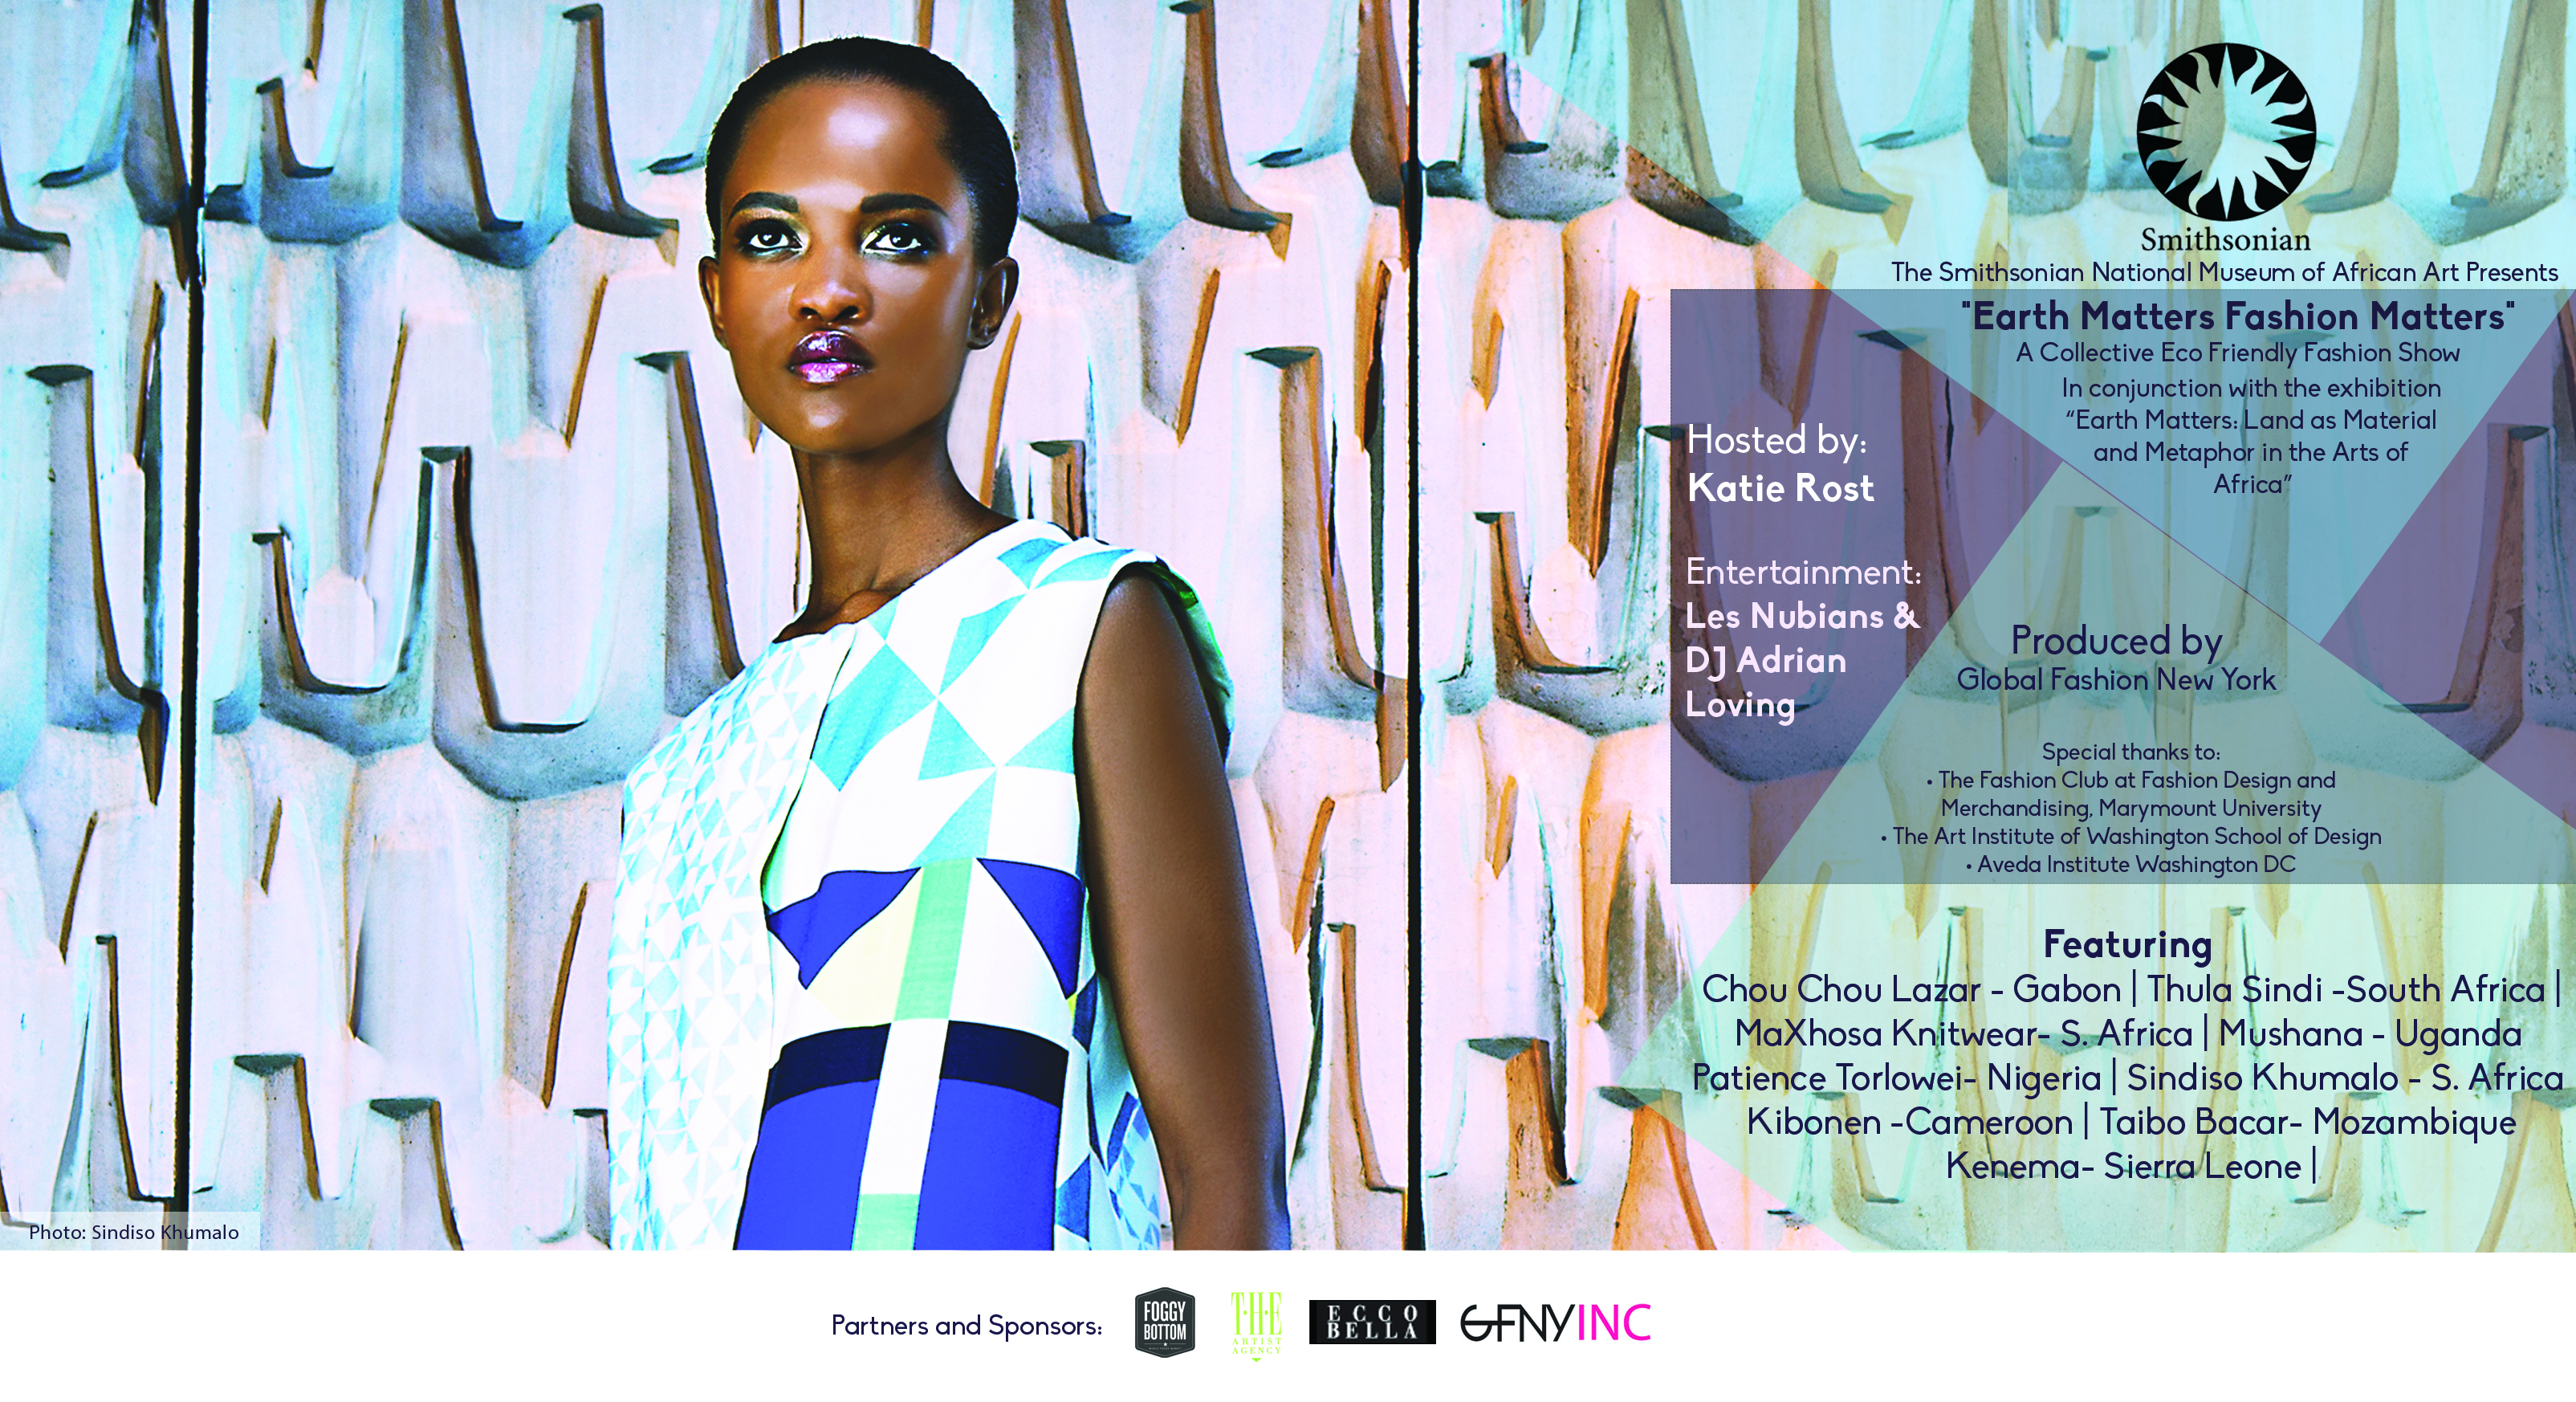 Eco Friendly Designs Come To The National Museum Of African Art In Earth Matters Fashion Matters